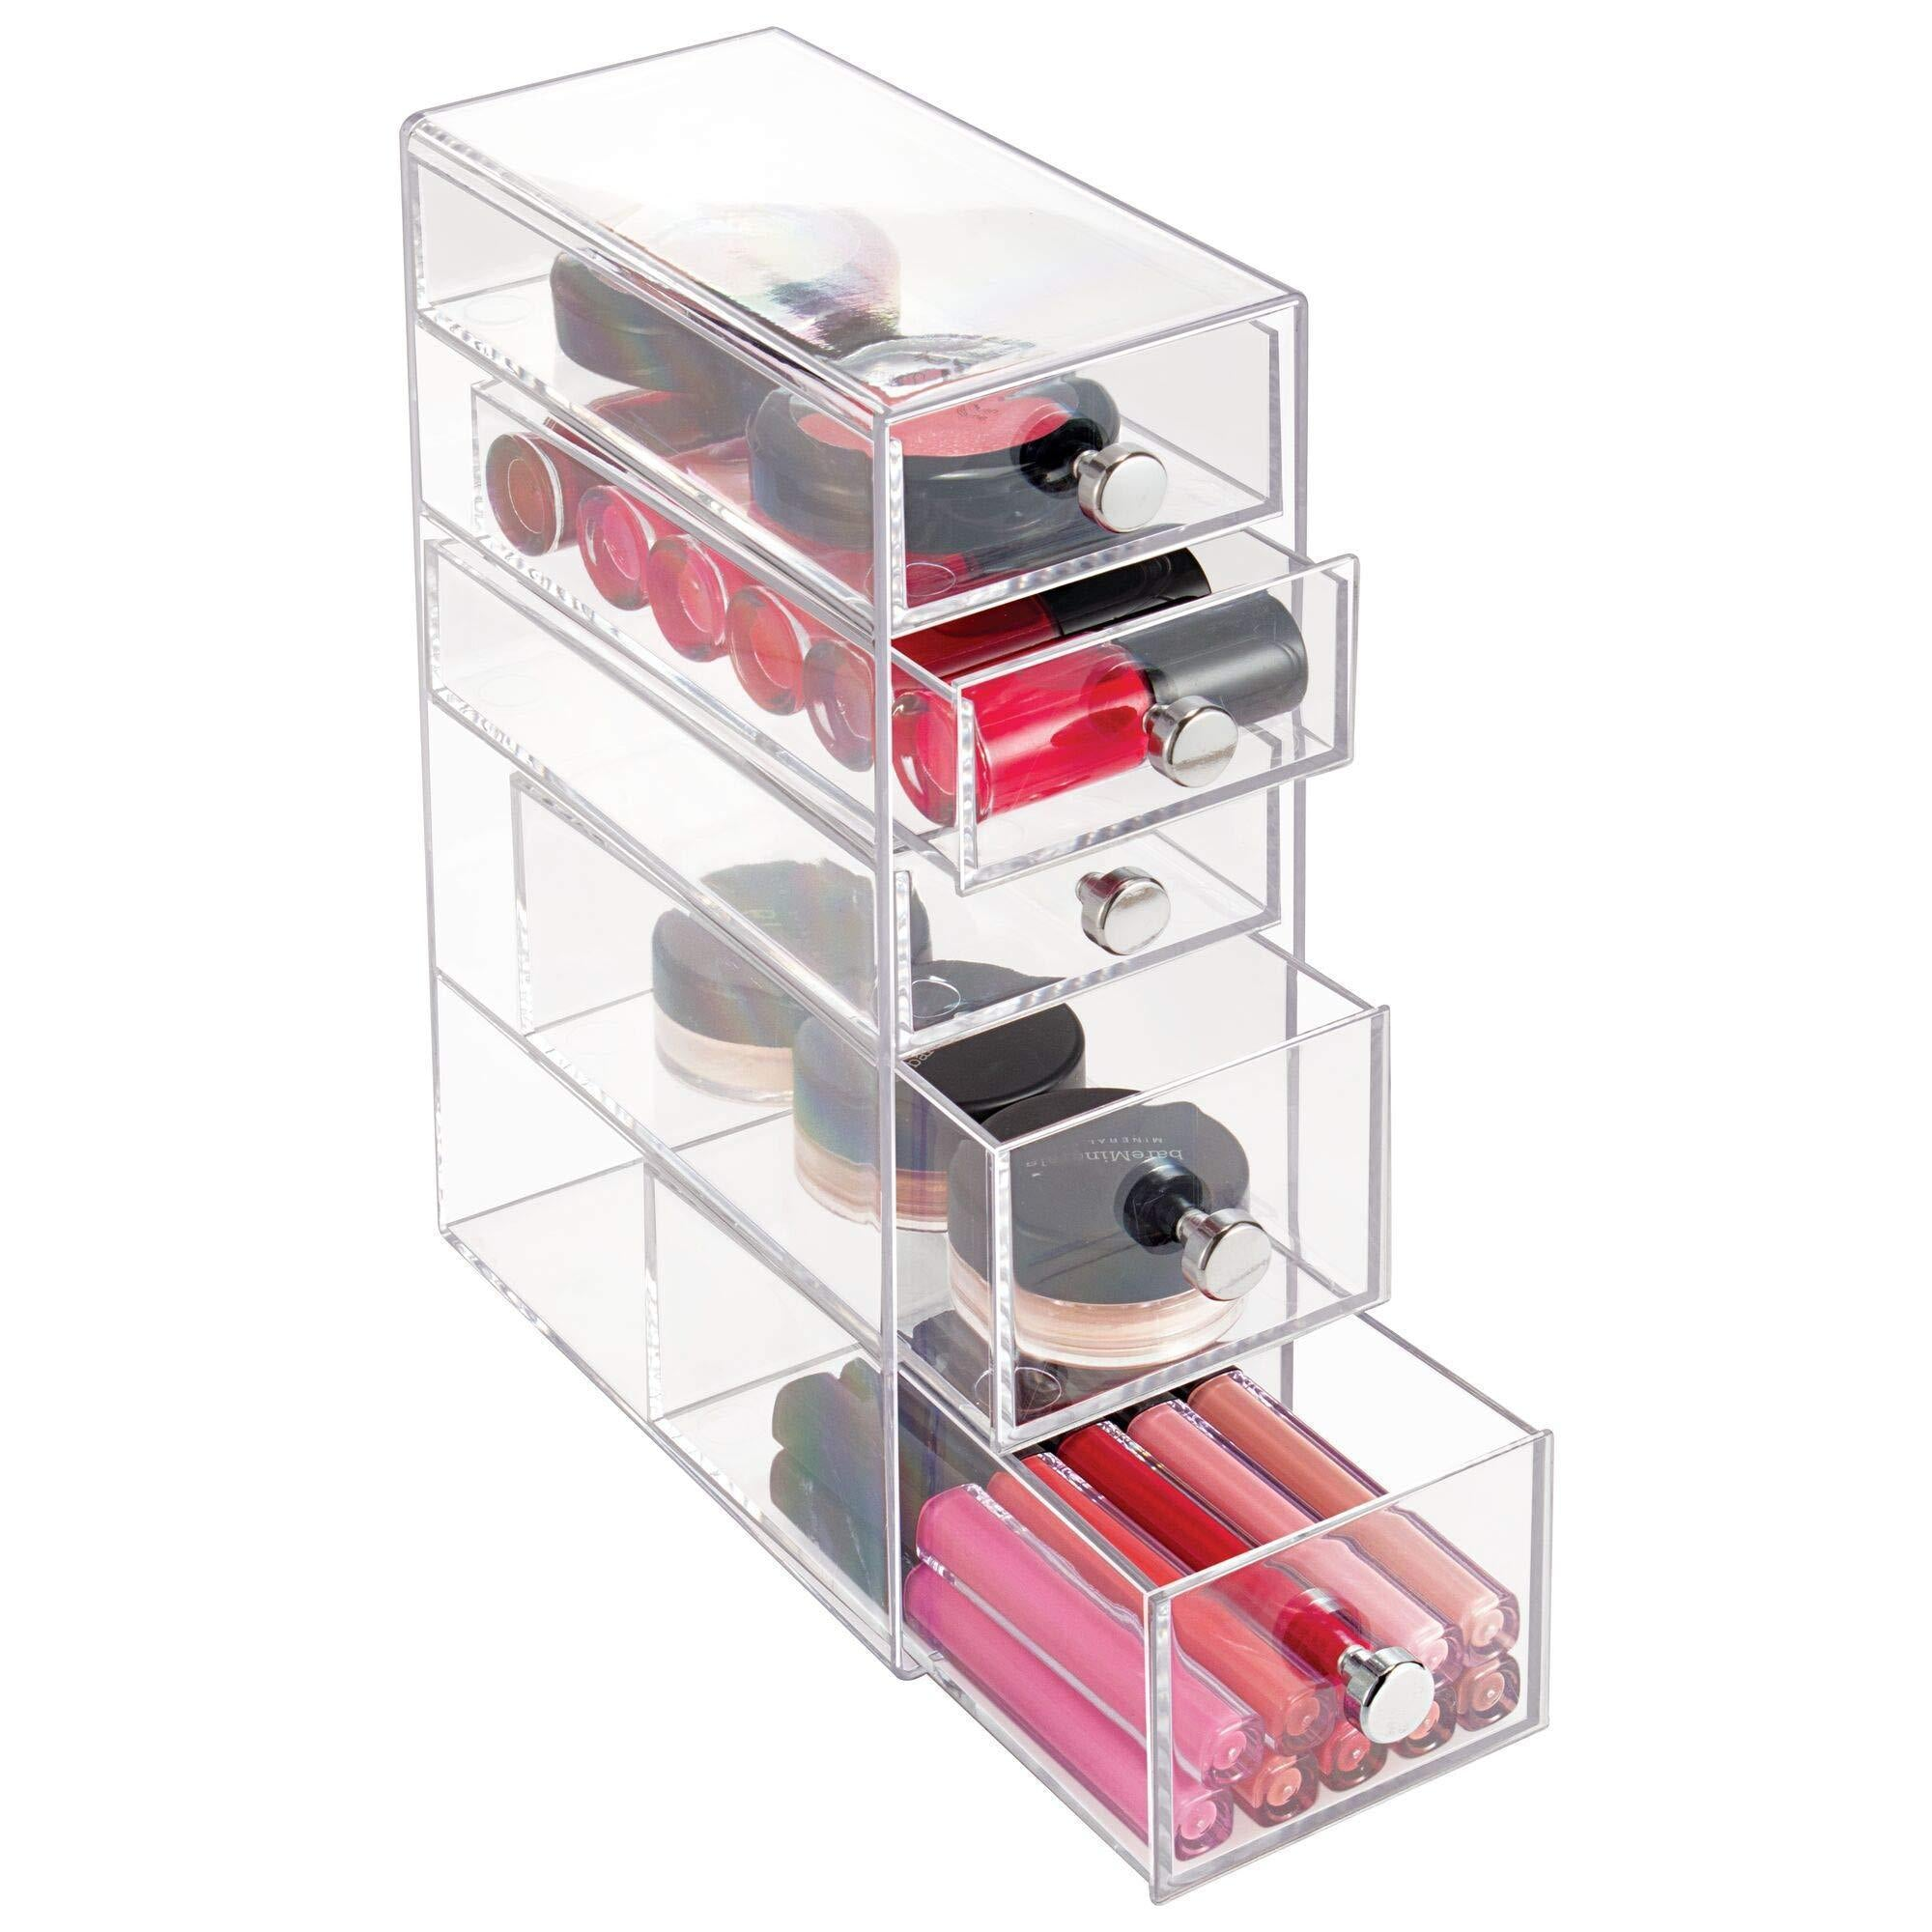 "iDesign Clarity Plastic Cosmetic 5-Drawer, Jewelry Countertop Organization for Vanity, Bathroom, Bedroom, Desk, Office, 3.5"" x 7"" x 10"", Clear"